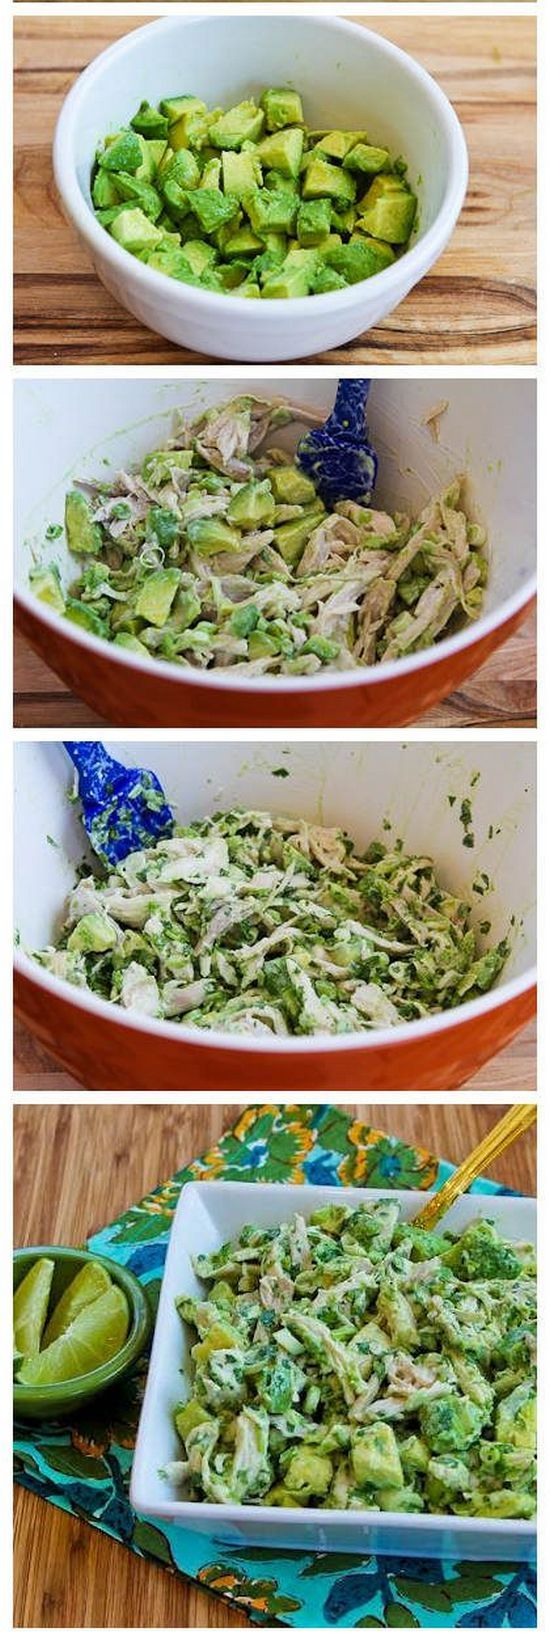 Chicken and Avocado Salad with Lime and Cilantro | Cookboum.com